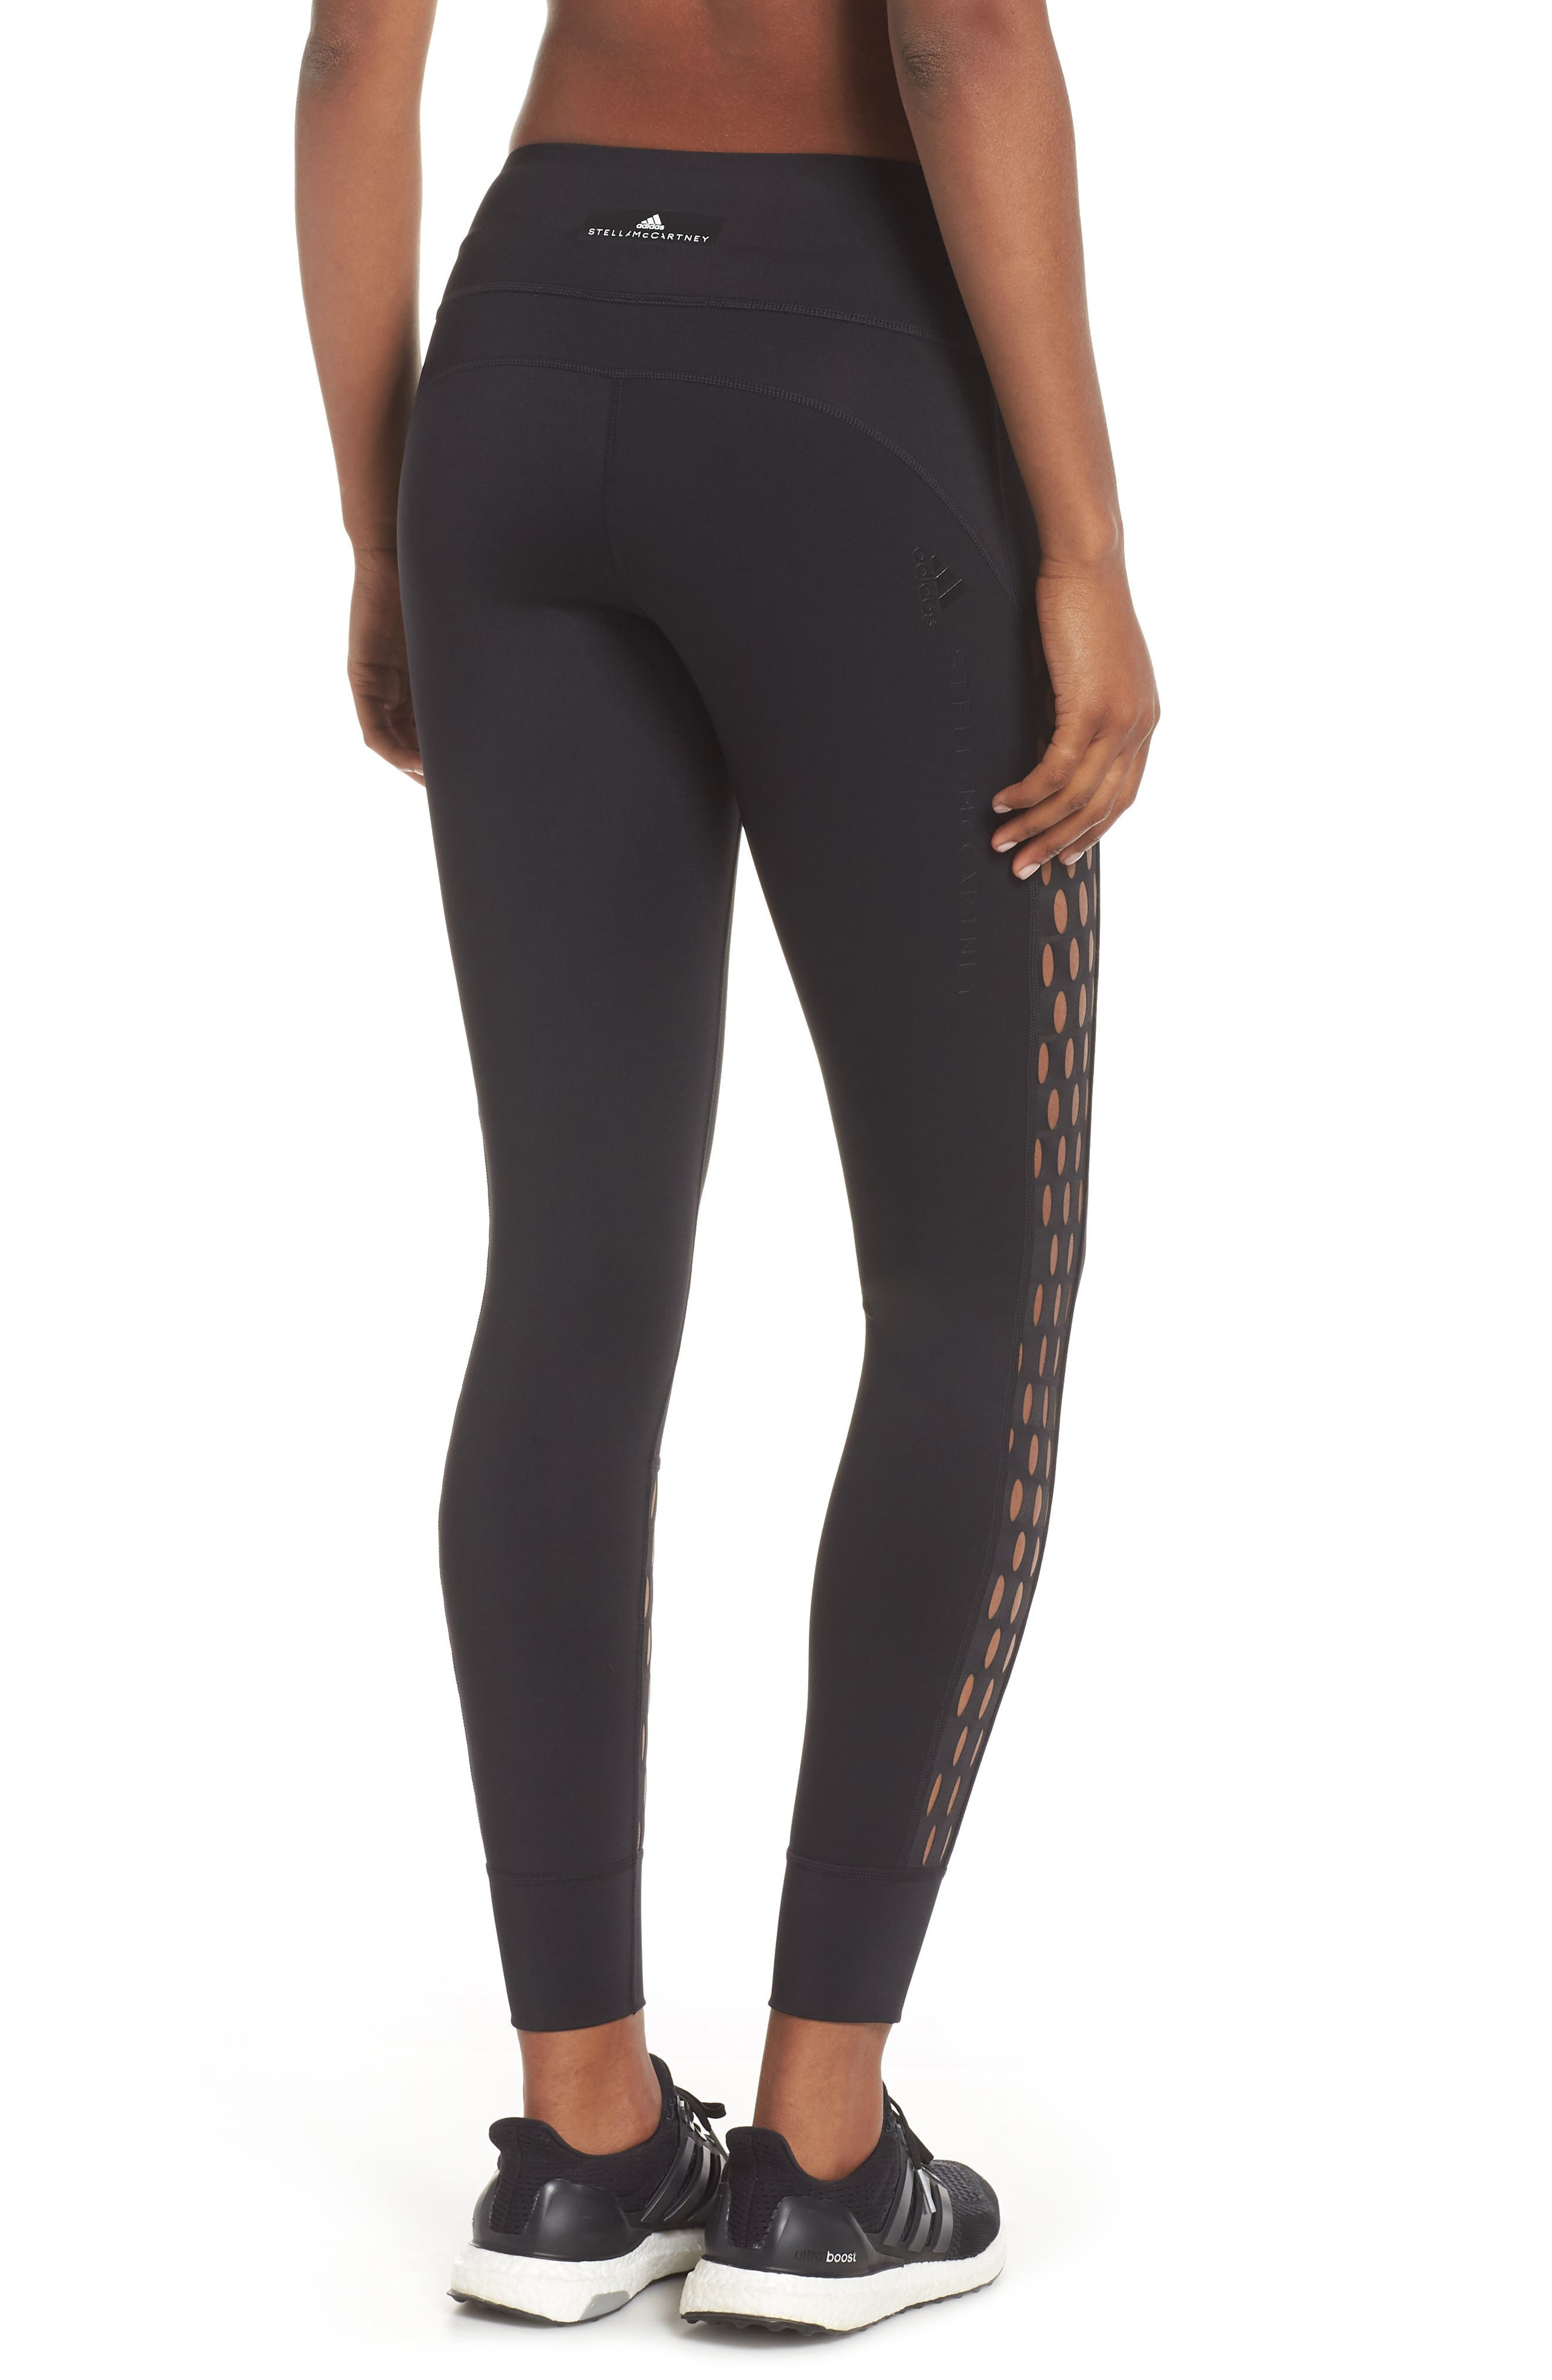 Run Training Tights,                             Alternate thumbnail 2, color,                             001